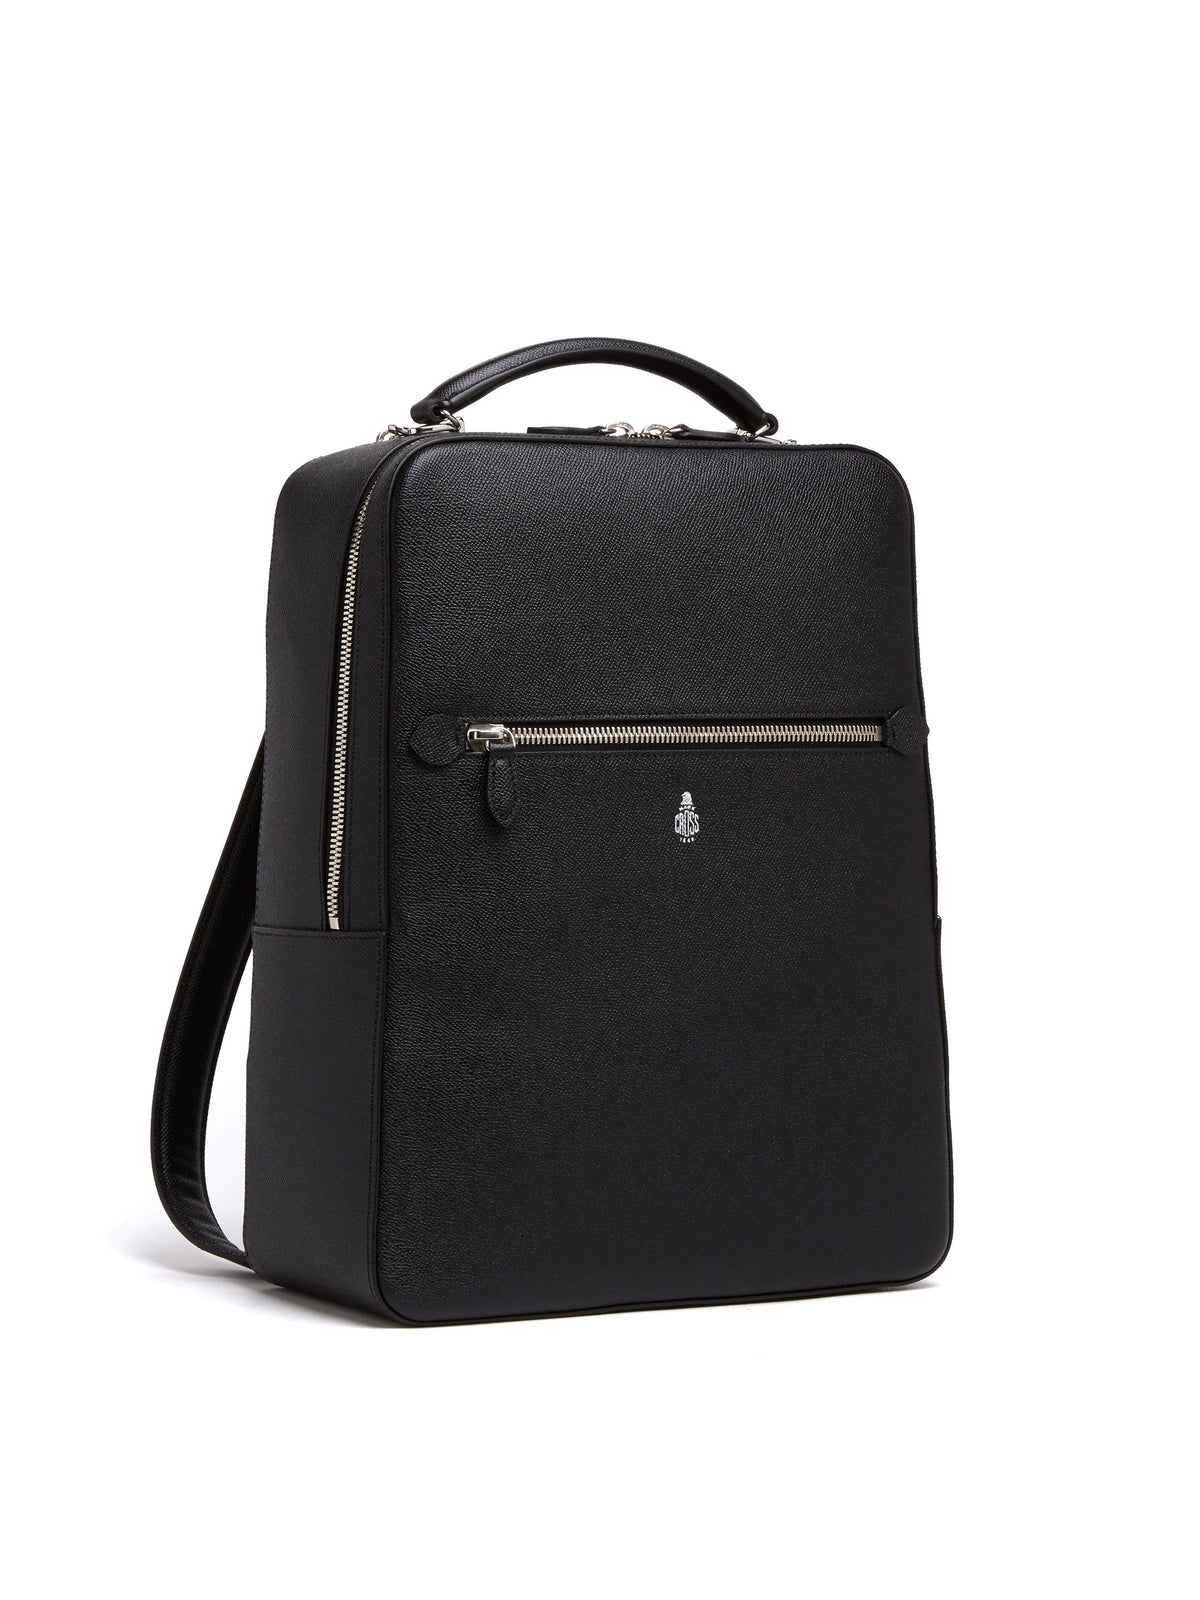 Mark Cross Alexander Leather Backpack Saffiano Black Side